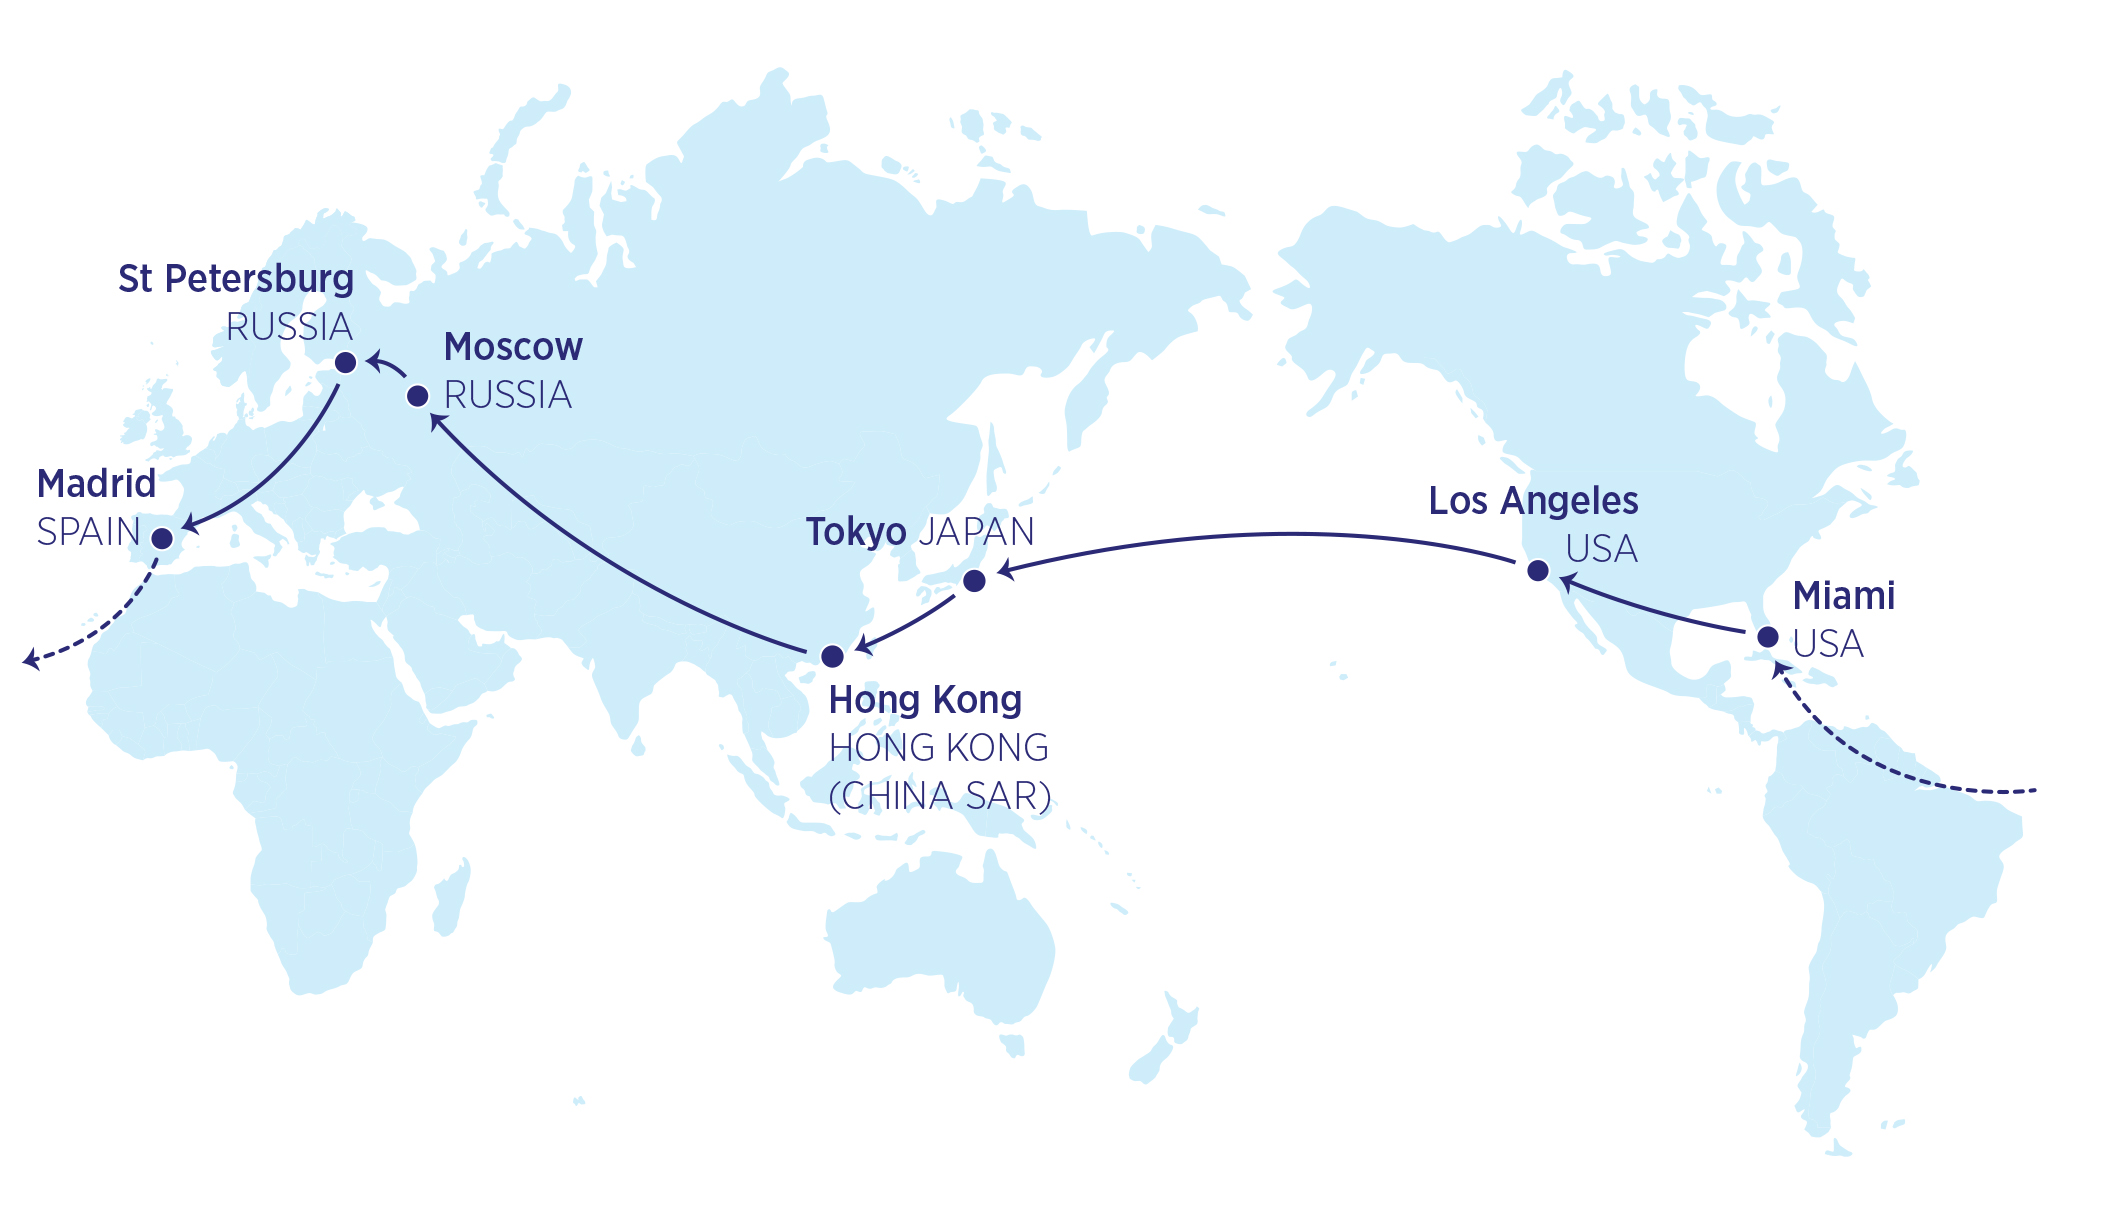 Global Travel | oneworld on flight routes from usa to russia, airplane map usa to india, flight routes united states network, flight routes to latin america from russia, flight routes from china to us, flight routes from usa to japan,